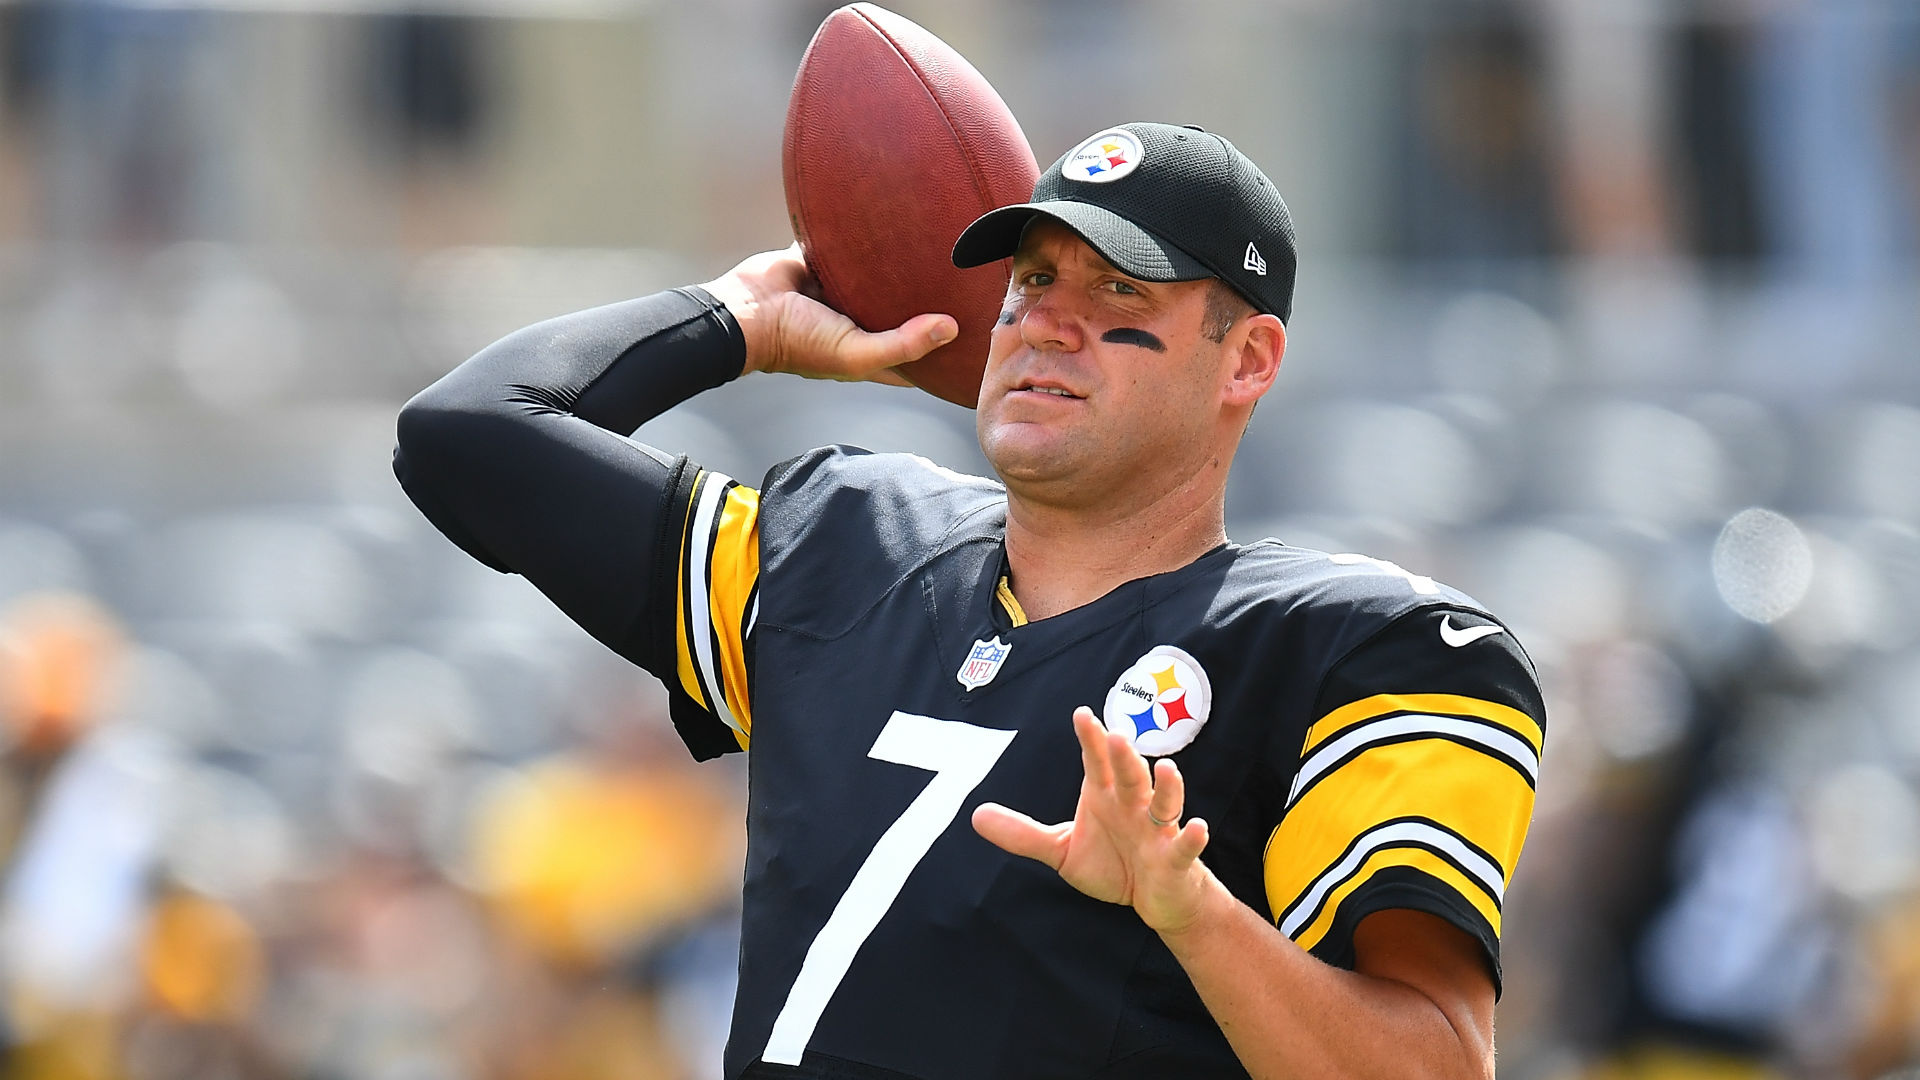 Ben Roethlisberger defends 'passionate' Antonio Brown, who's back with Steelers